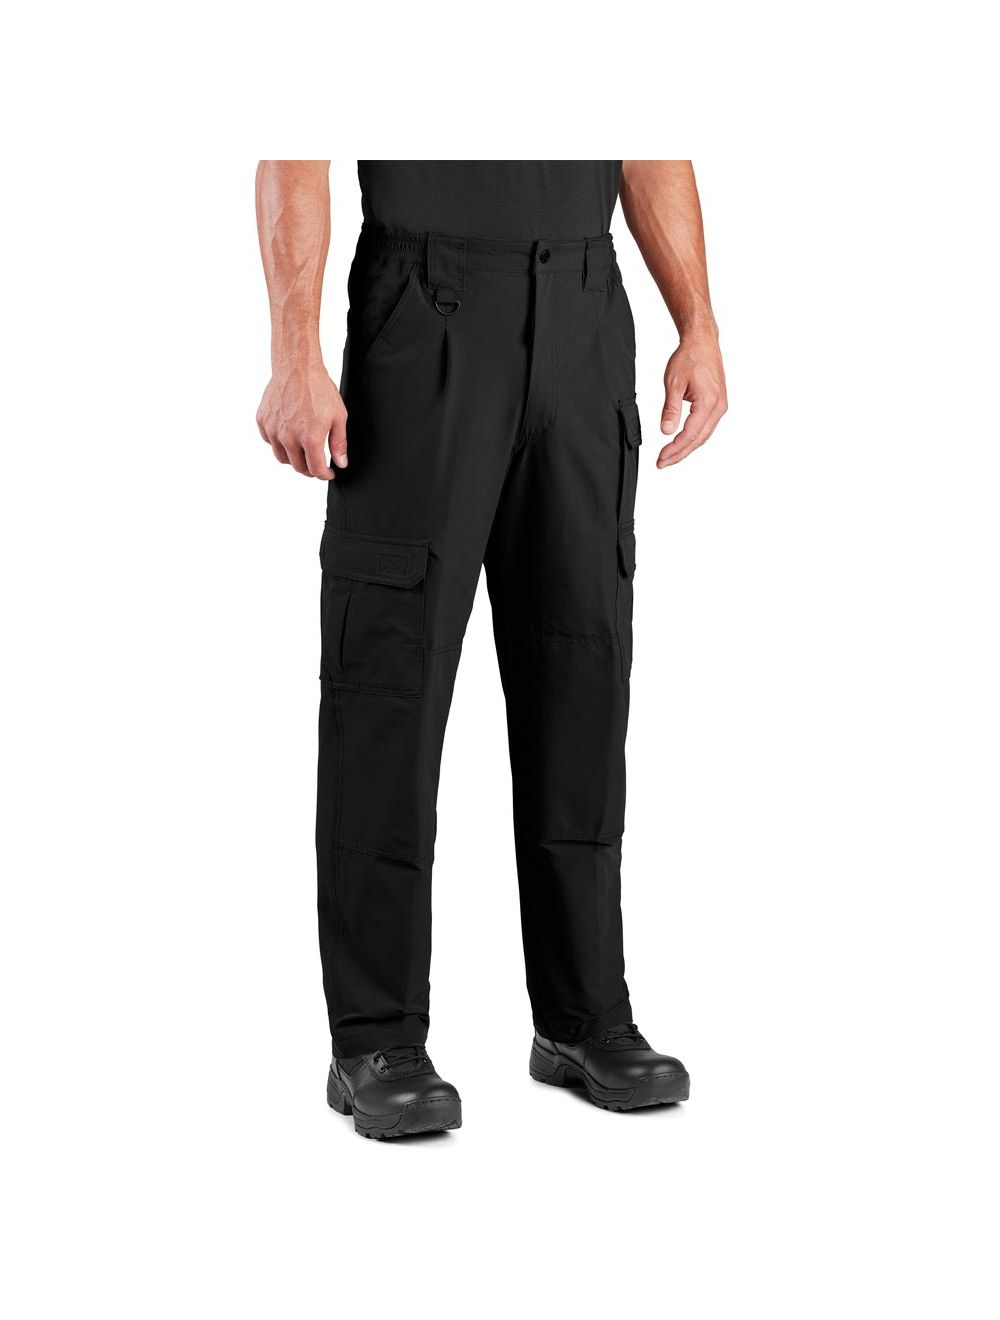 Propper - Mens Stretch Tactical Pant - Black - F52522